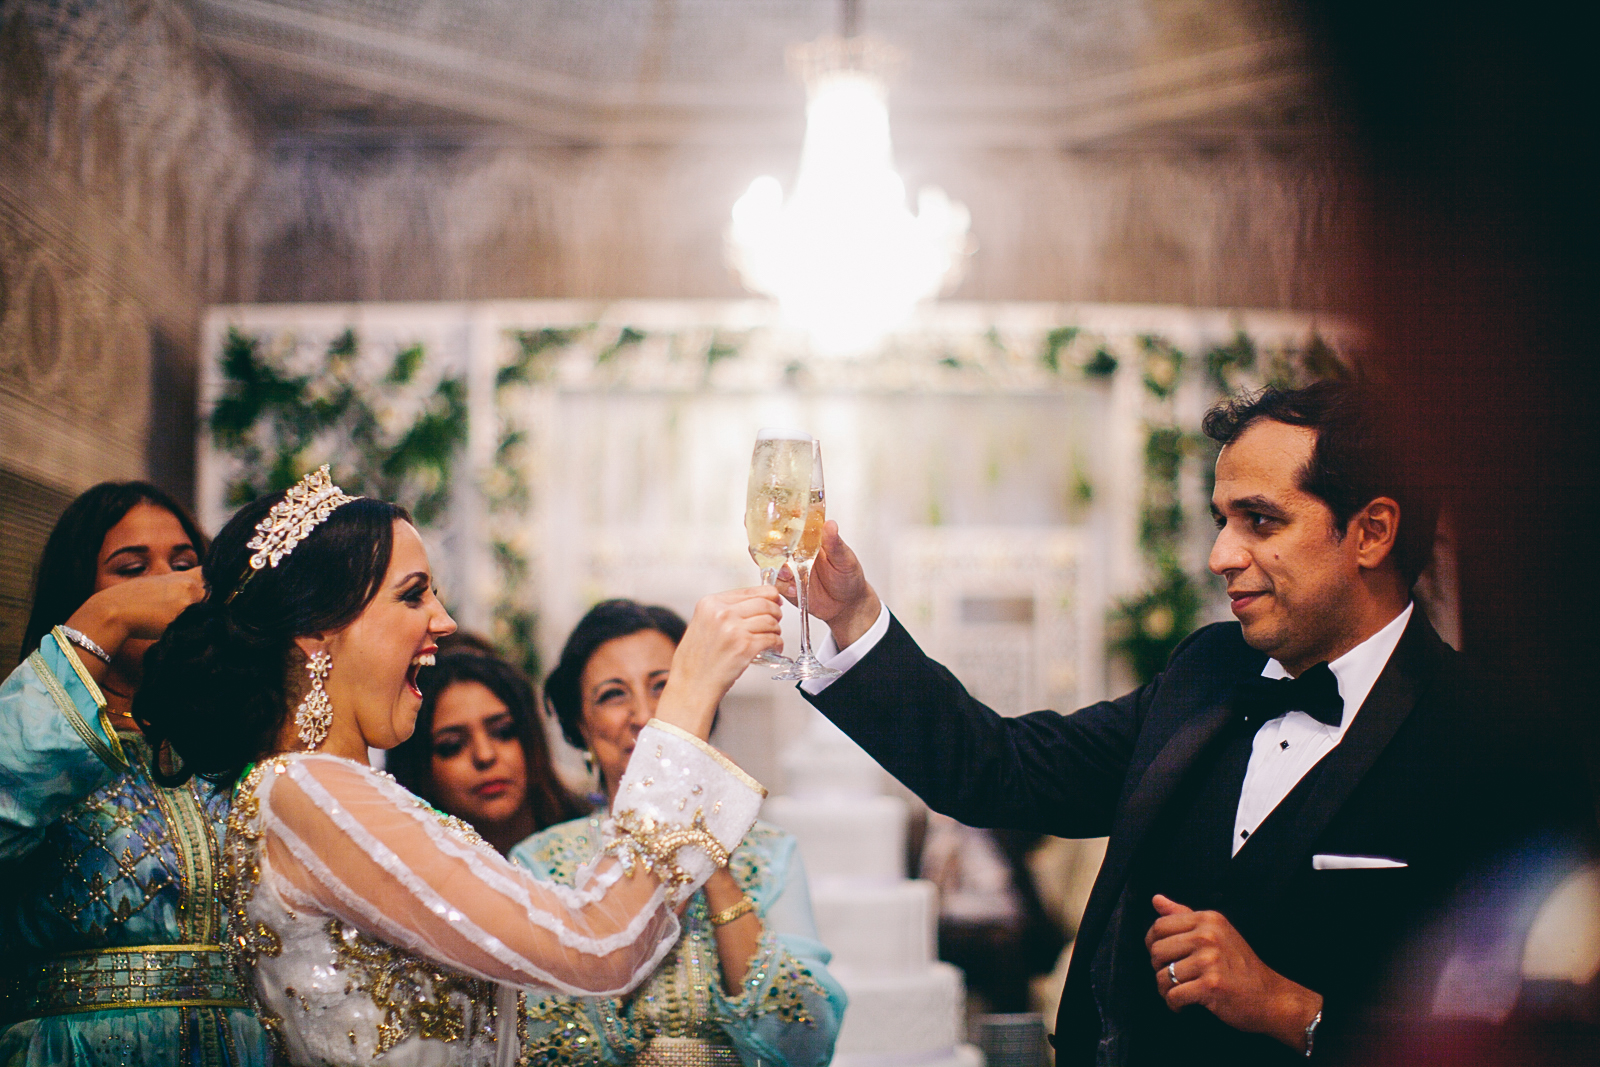 traditional_moroccan_wedding_photographry_casablanca_morocco_houda_vivek_ebony_siovhan_bokeh_photography_173.jpg